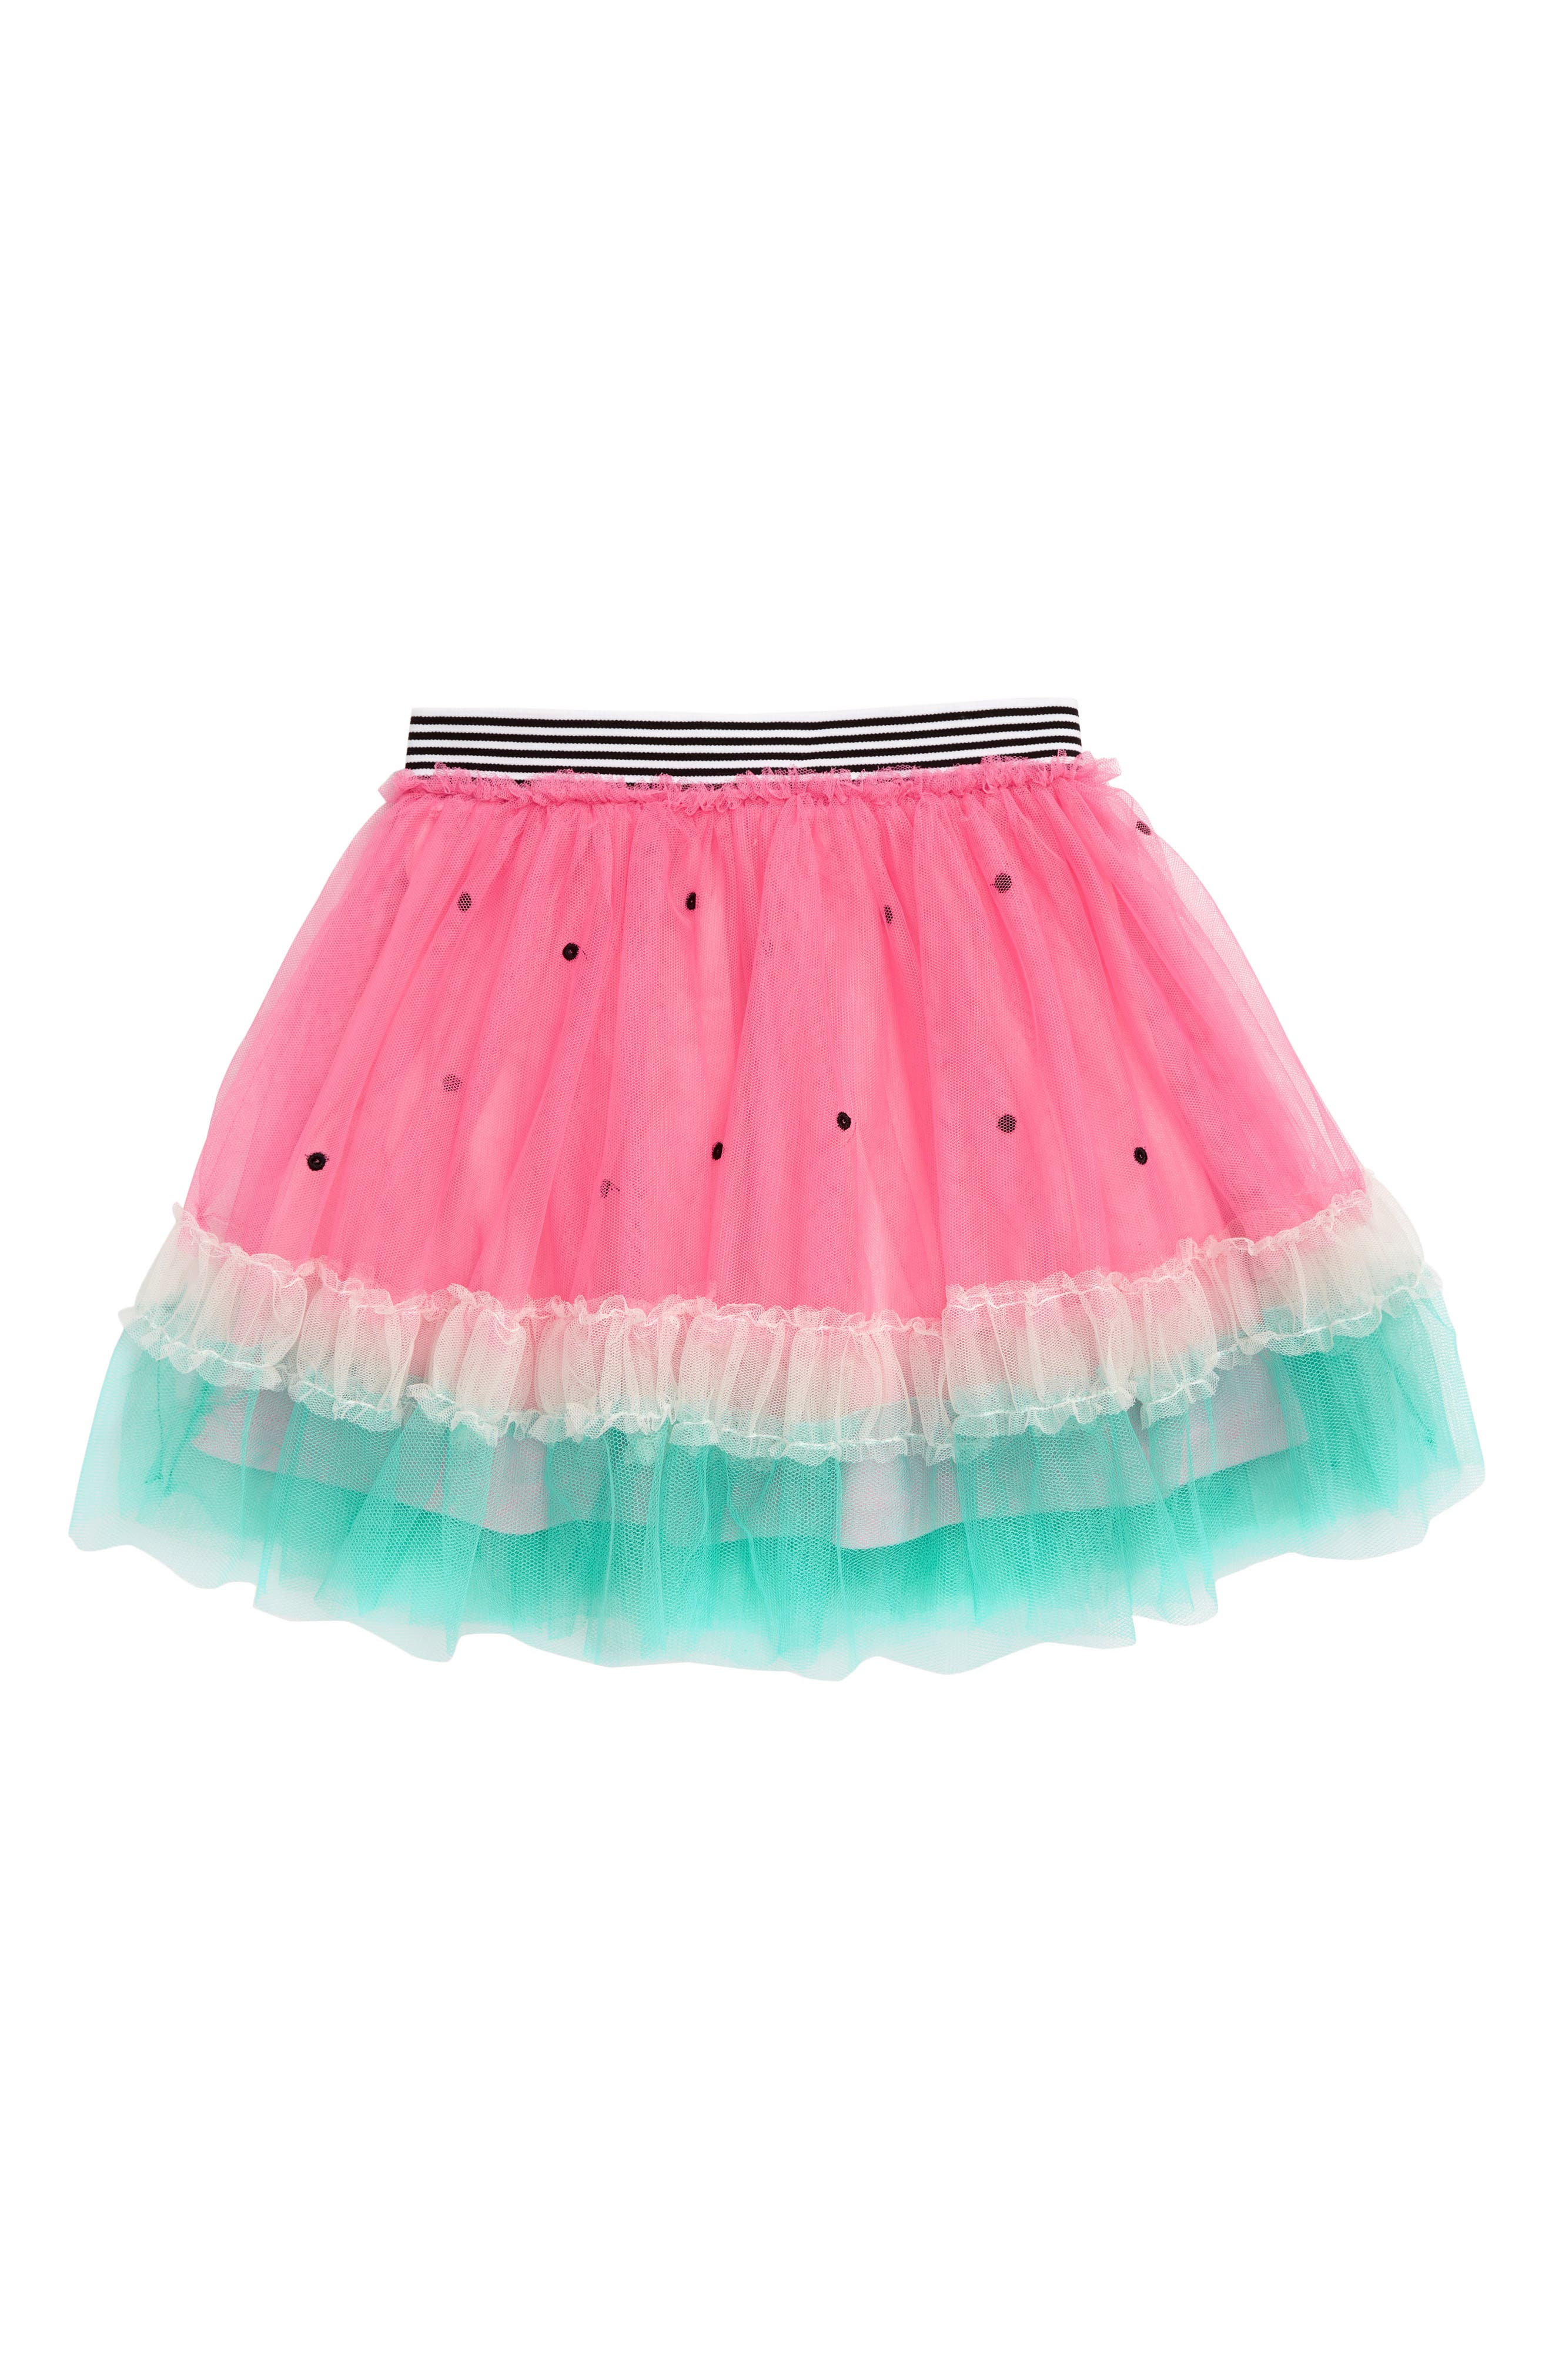 Toddler Girls Truly Me Watermelon Tutu Size 2T  Pink